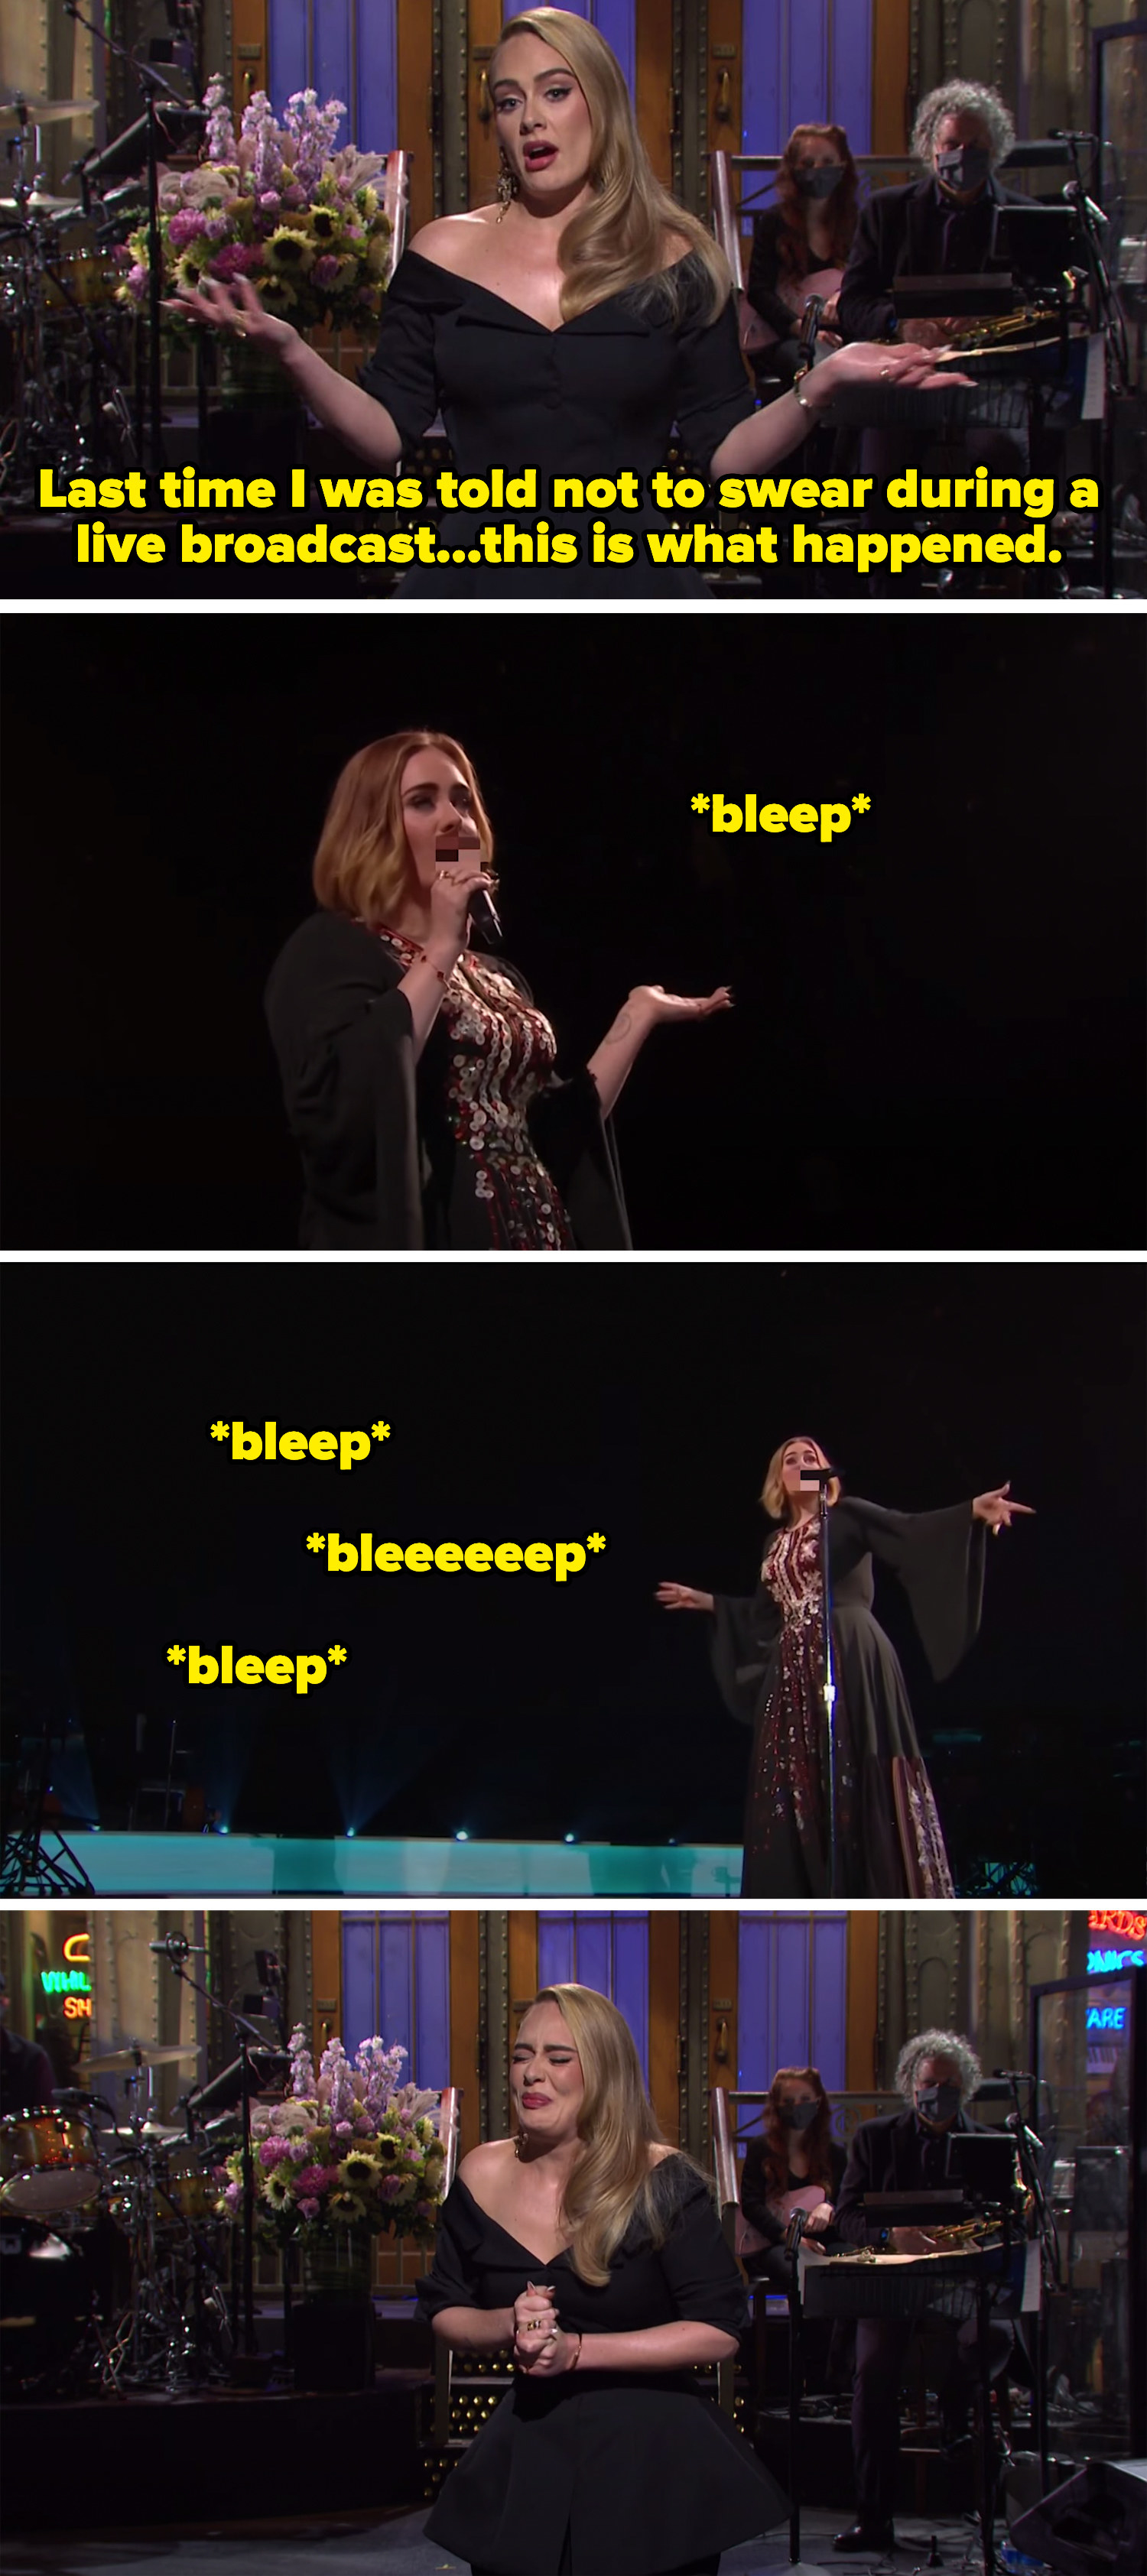 Adele continuing to swear after being told not to